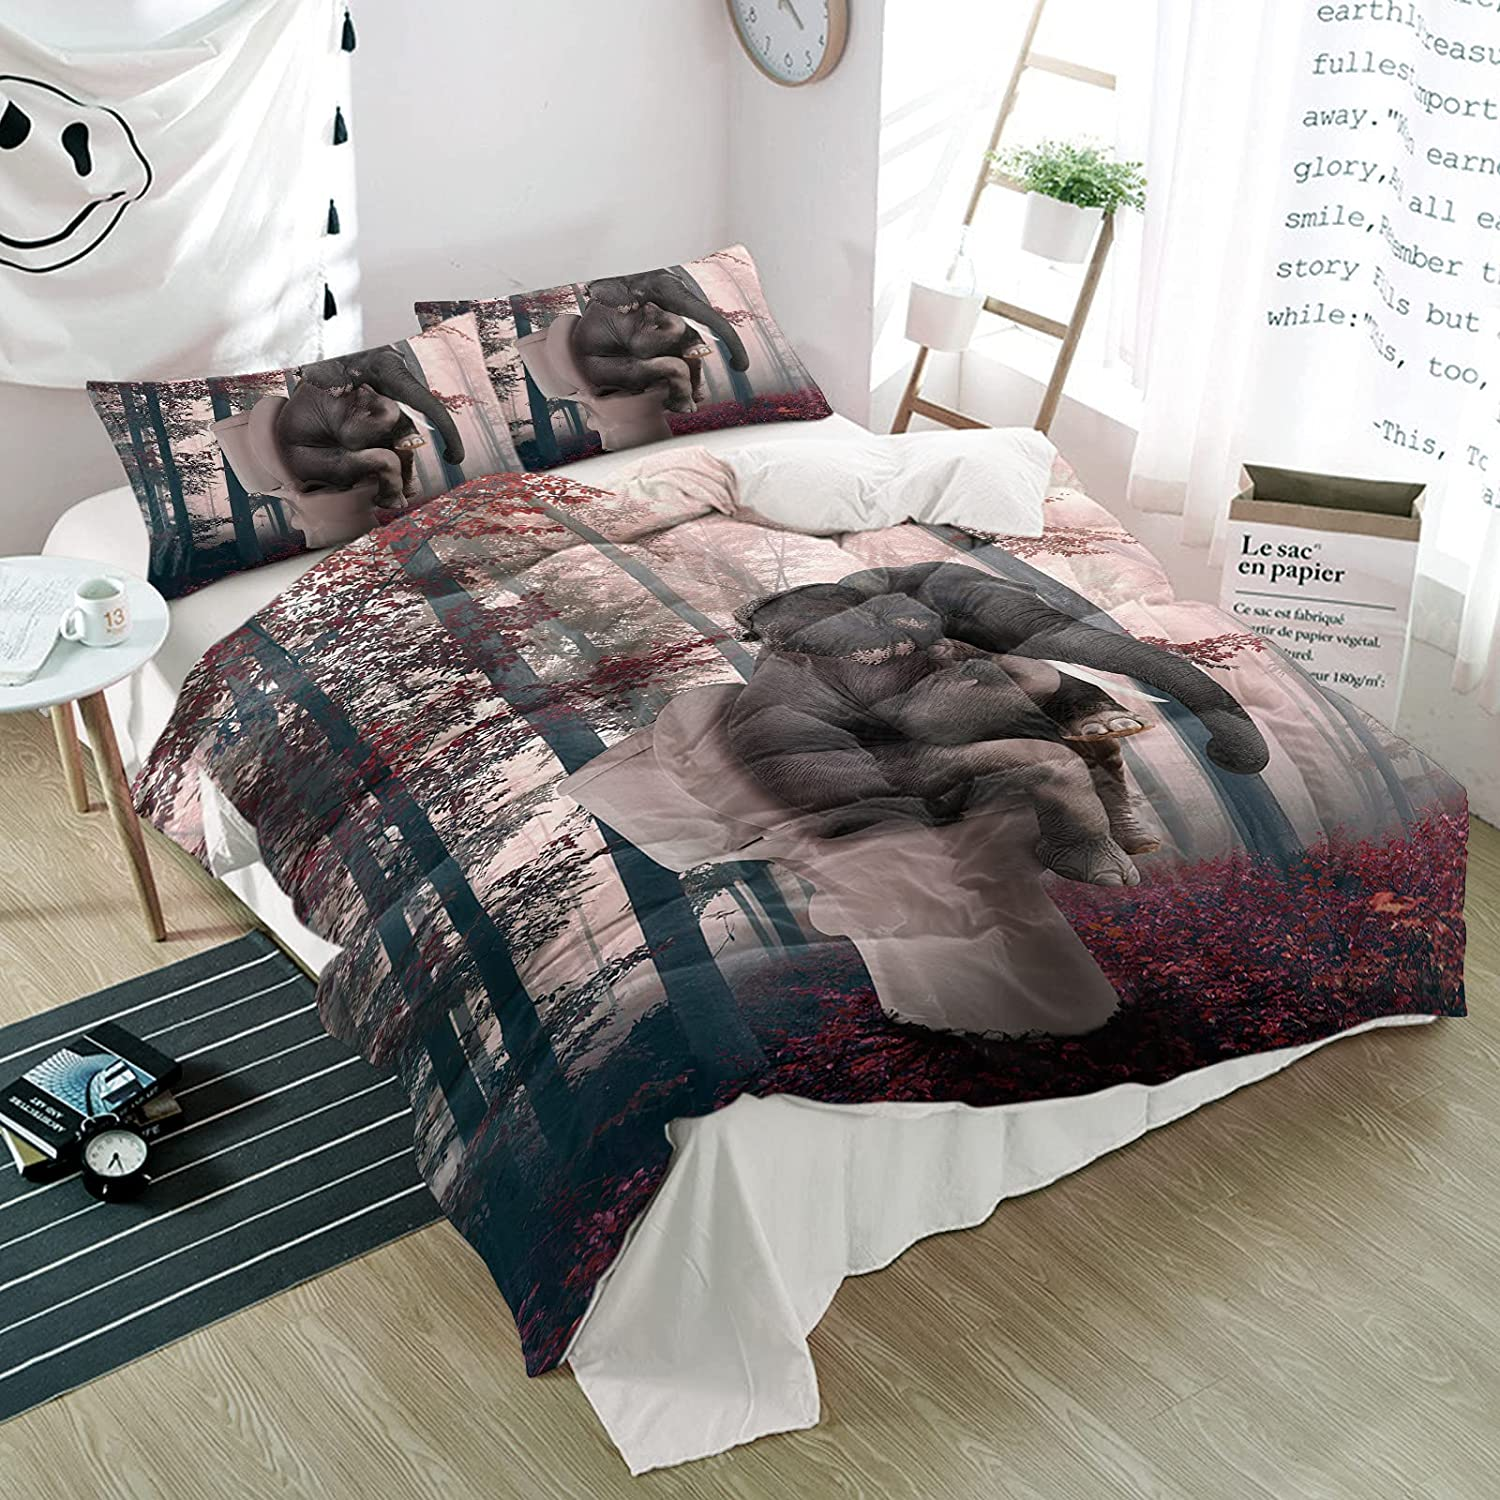 California King Duvet Cover Set Autumn Funny Forest Elephant Portland Mall Sit security